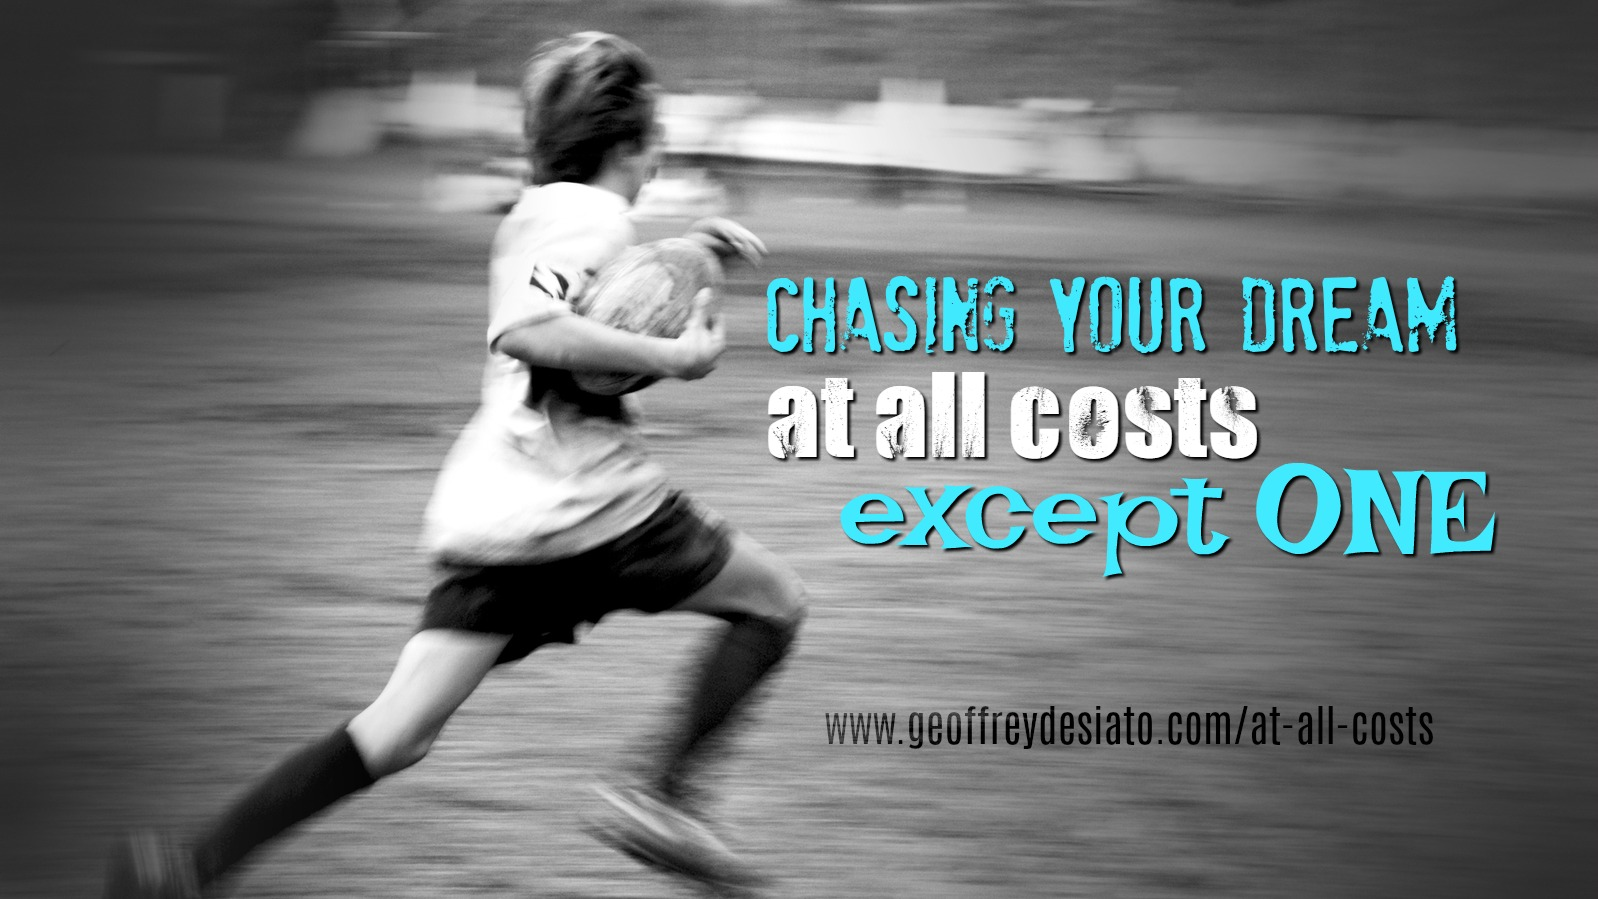 Chasing Your Dream at all costs except one | Convictions | Integrity